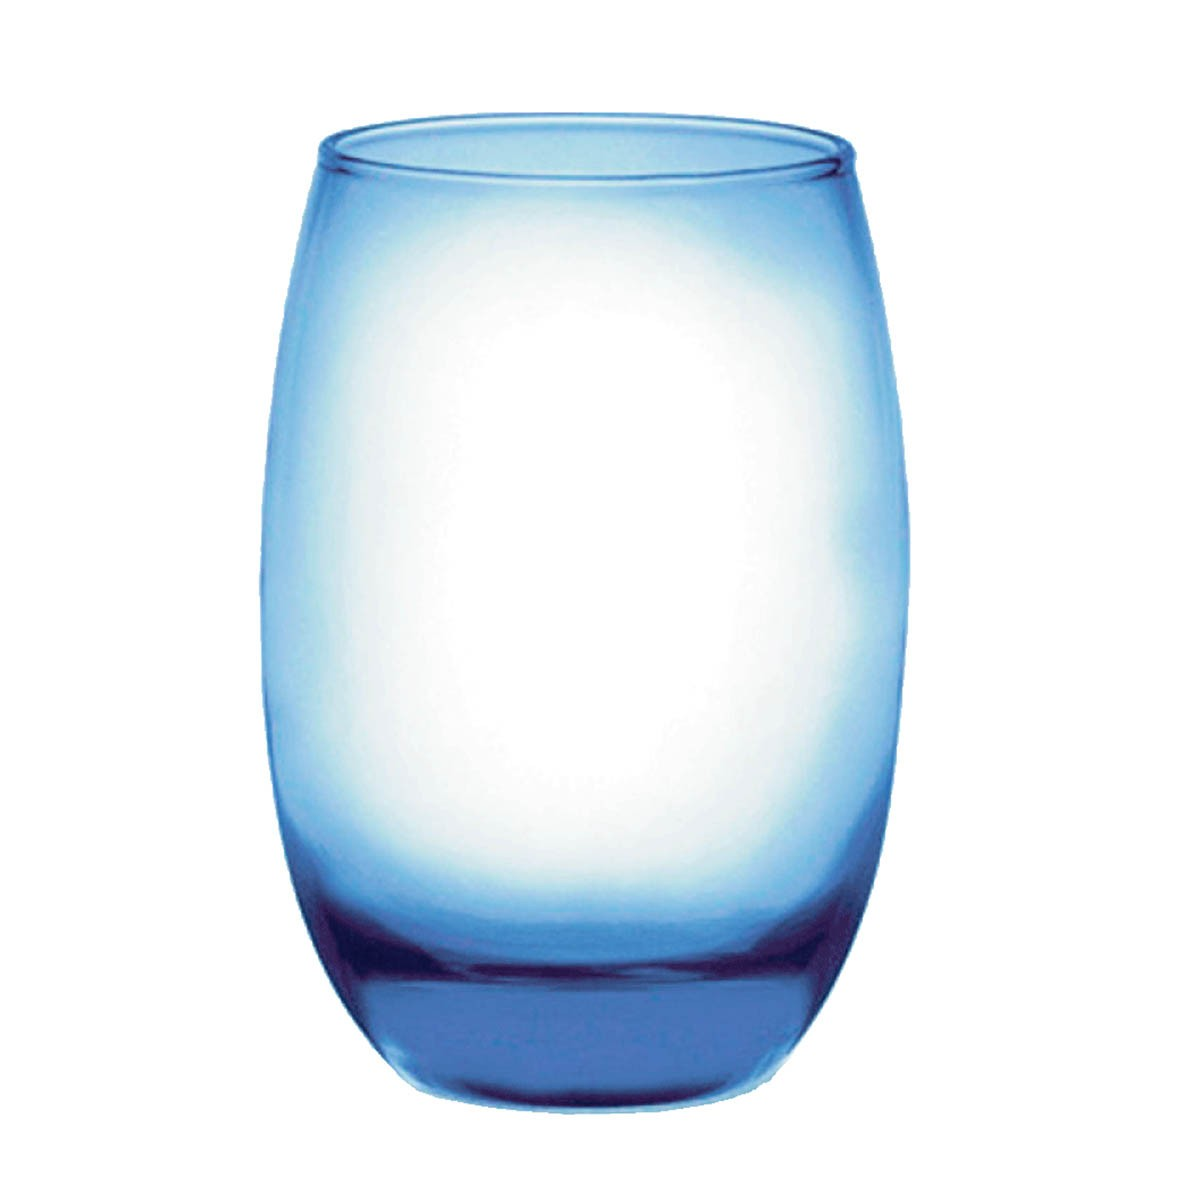 7891017015384 - COPO BELLIZE L DRINK AZUL